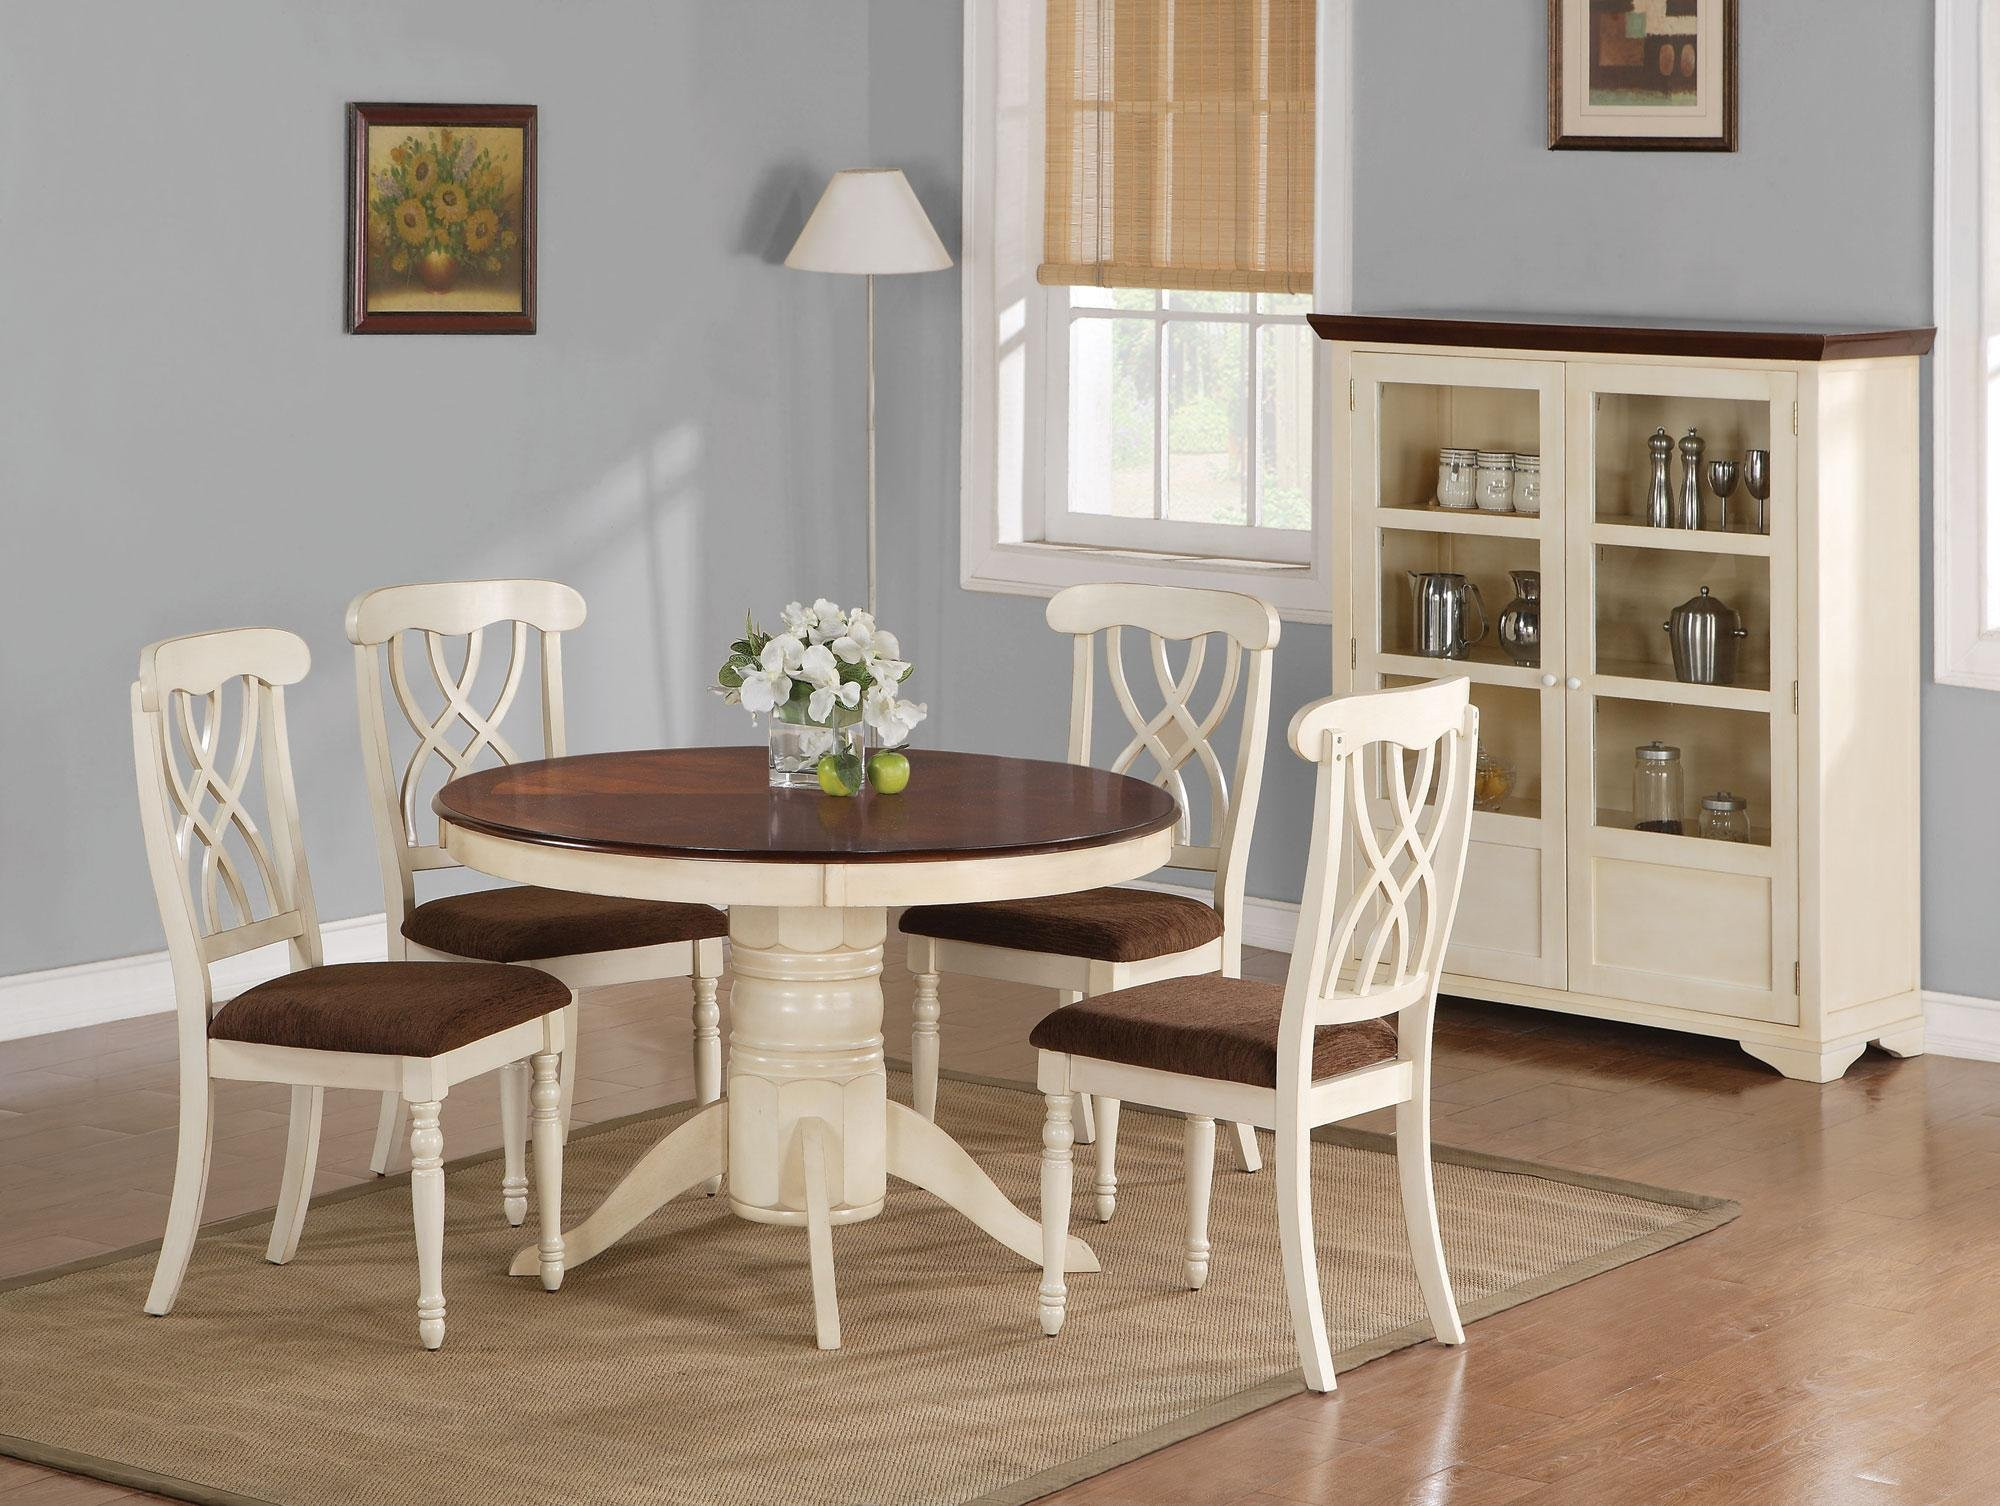 White Kitchen Bench  Beautiful White Round Kitchen Table and Chairs